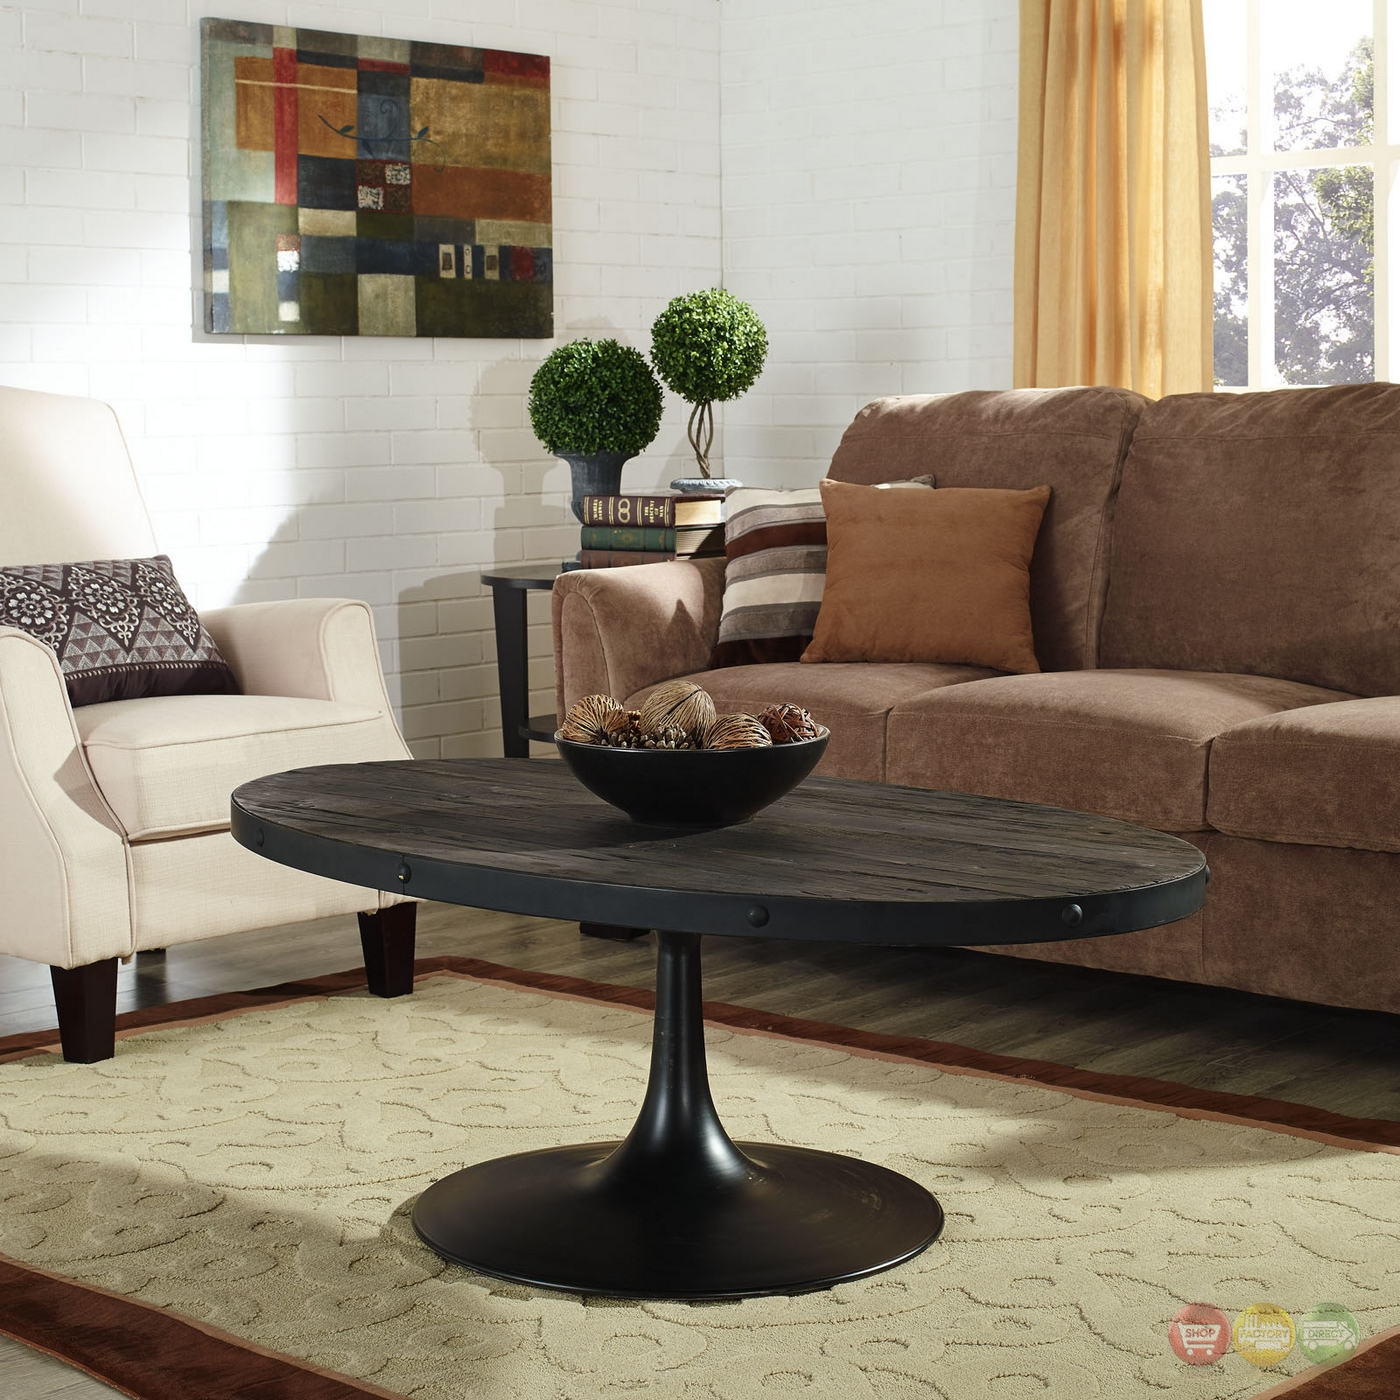 Round Glass Pedestal Coffee Table: Drive Industrial Modern Round Wood Top Coffee Table W